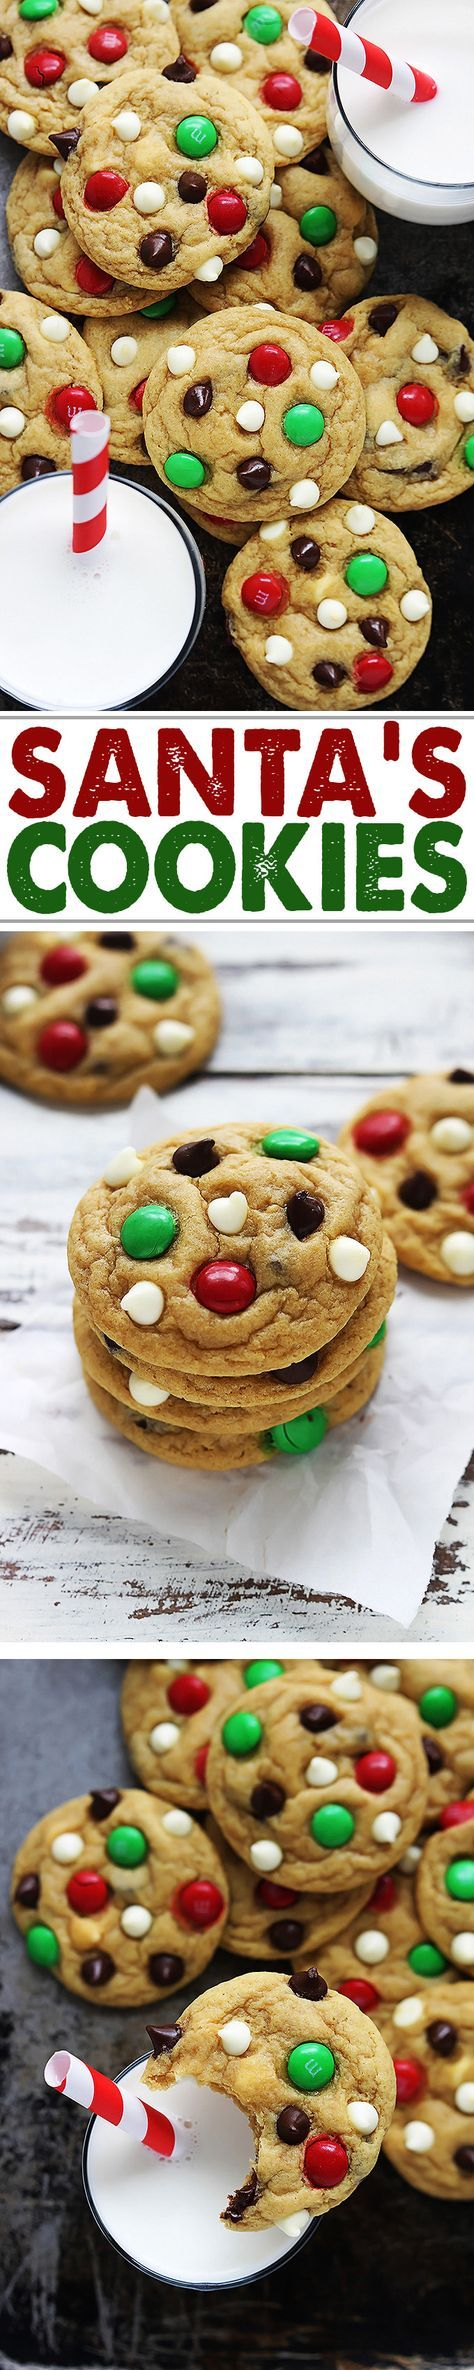 Santa's favorite cookies! Soft and chewy double chocolate chip pudding cookies with M&M candies! | Creme de la Crumb